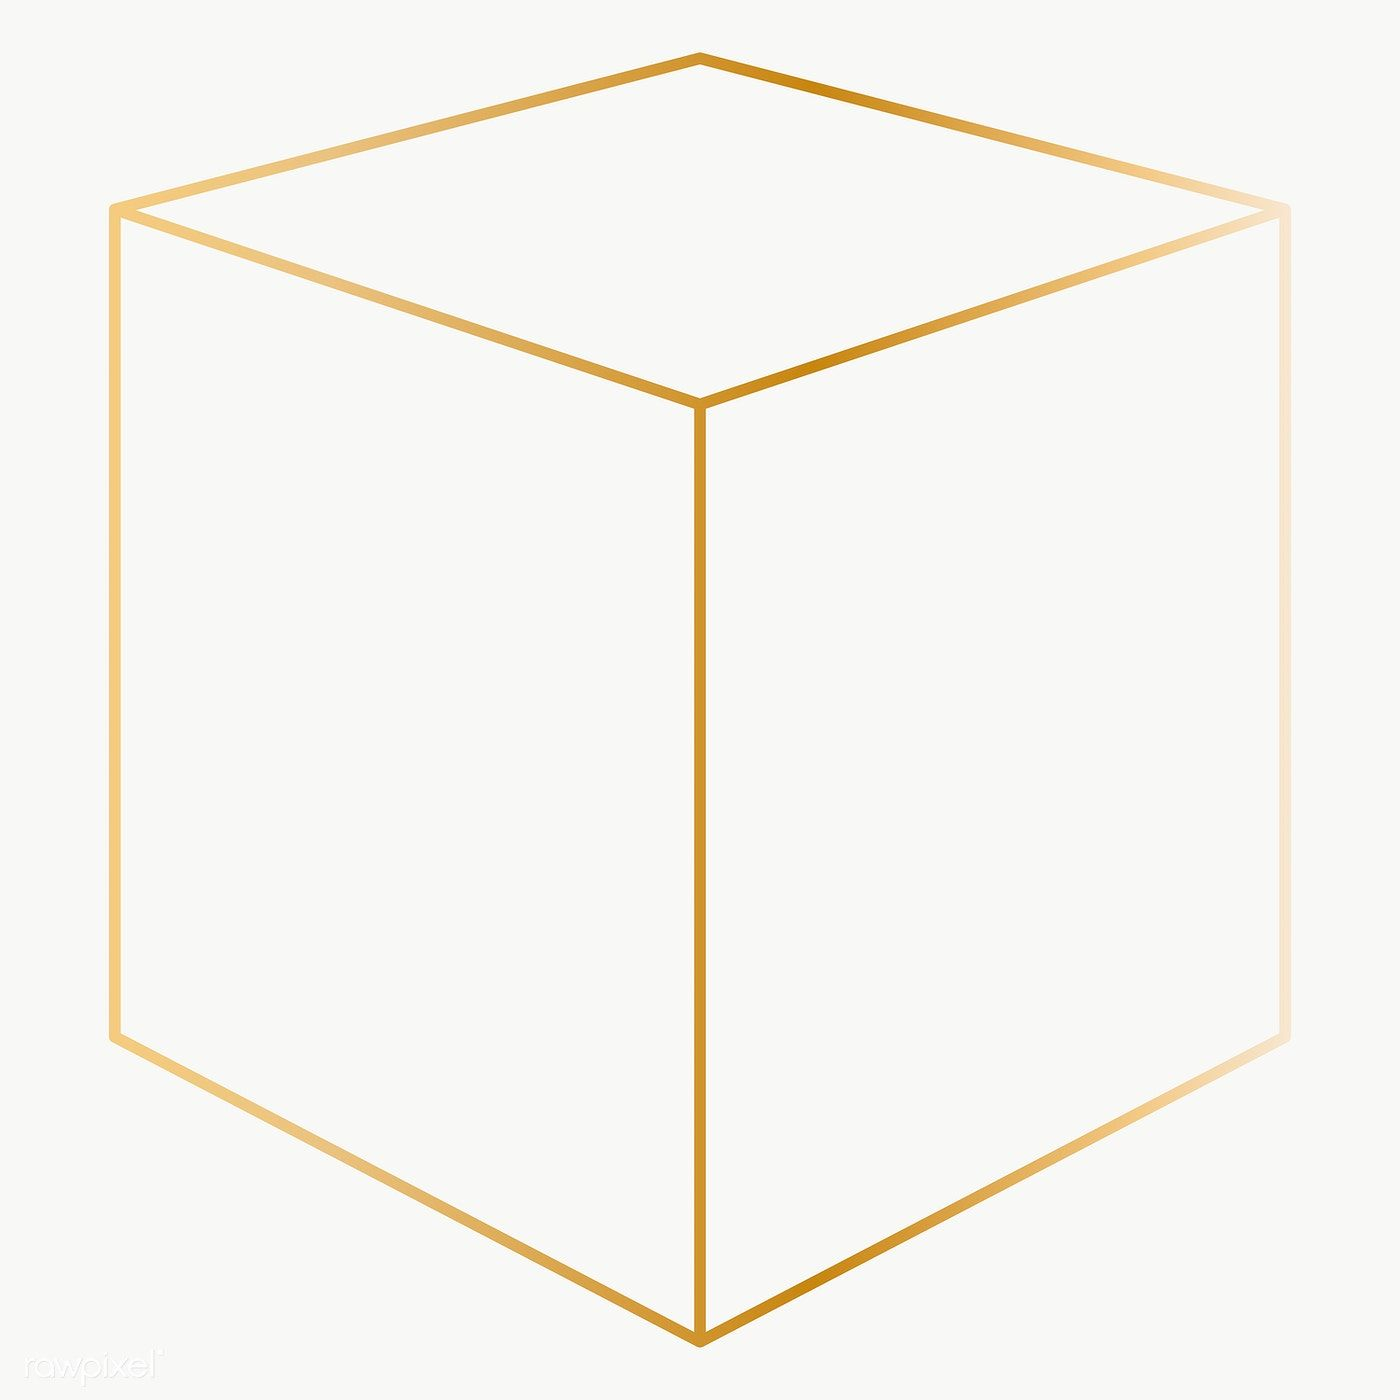 Minimal Gold Cube Shape Transparent Png Free Image By Rawpixel Com Katie Vector Background Pattern Web Design Resources Free Frames